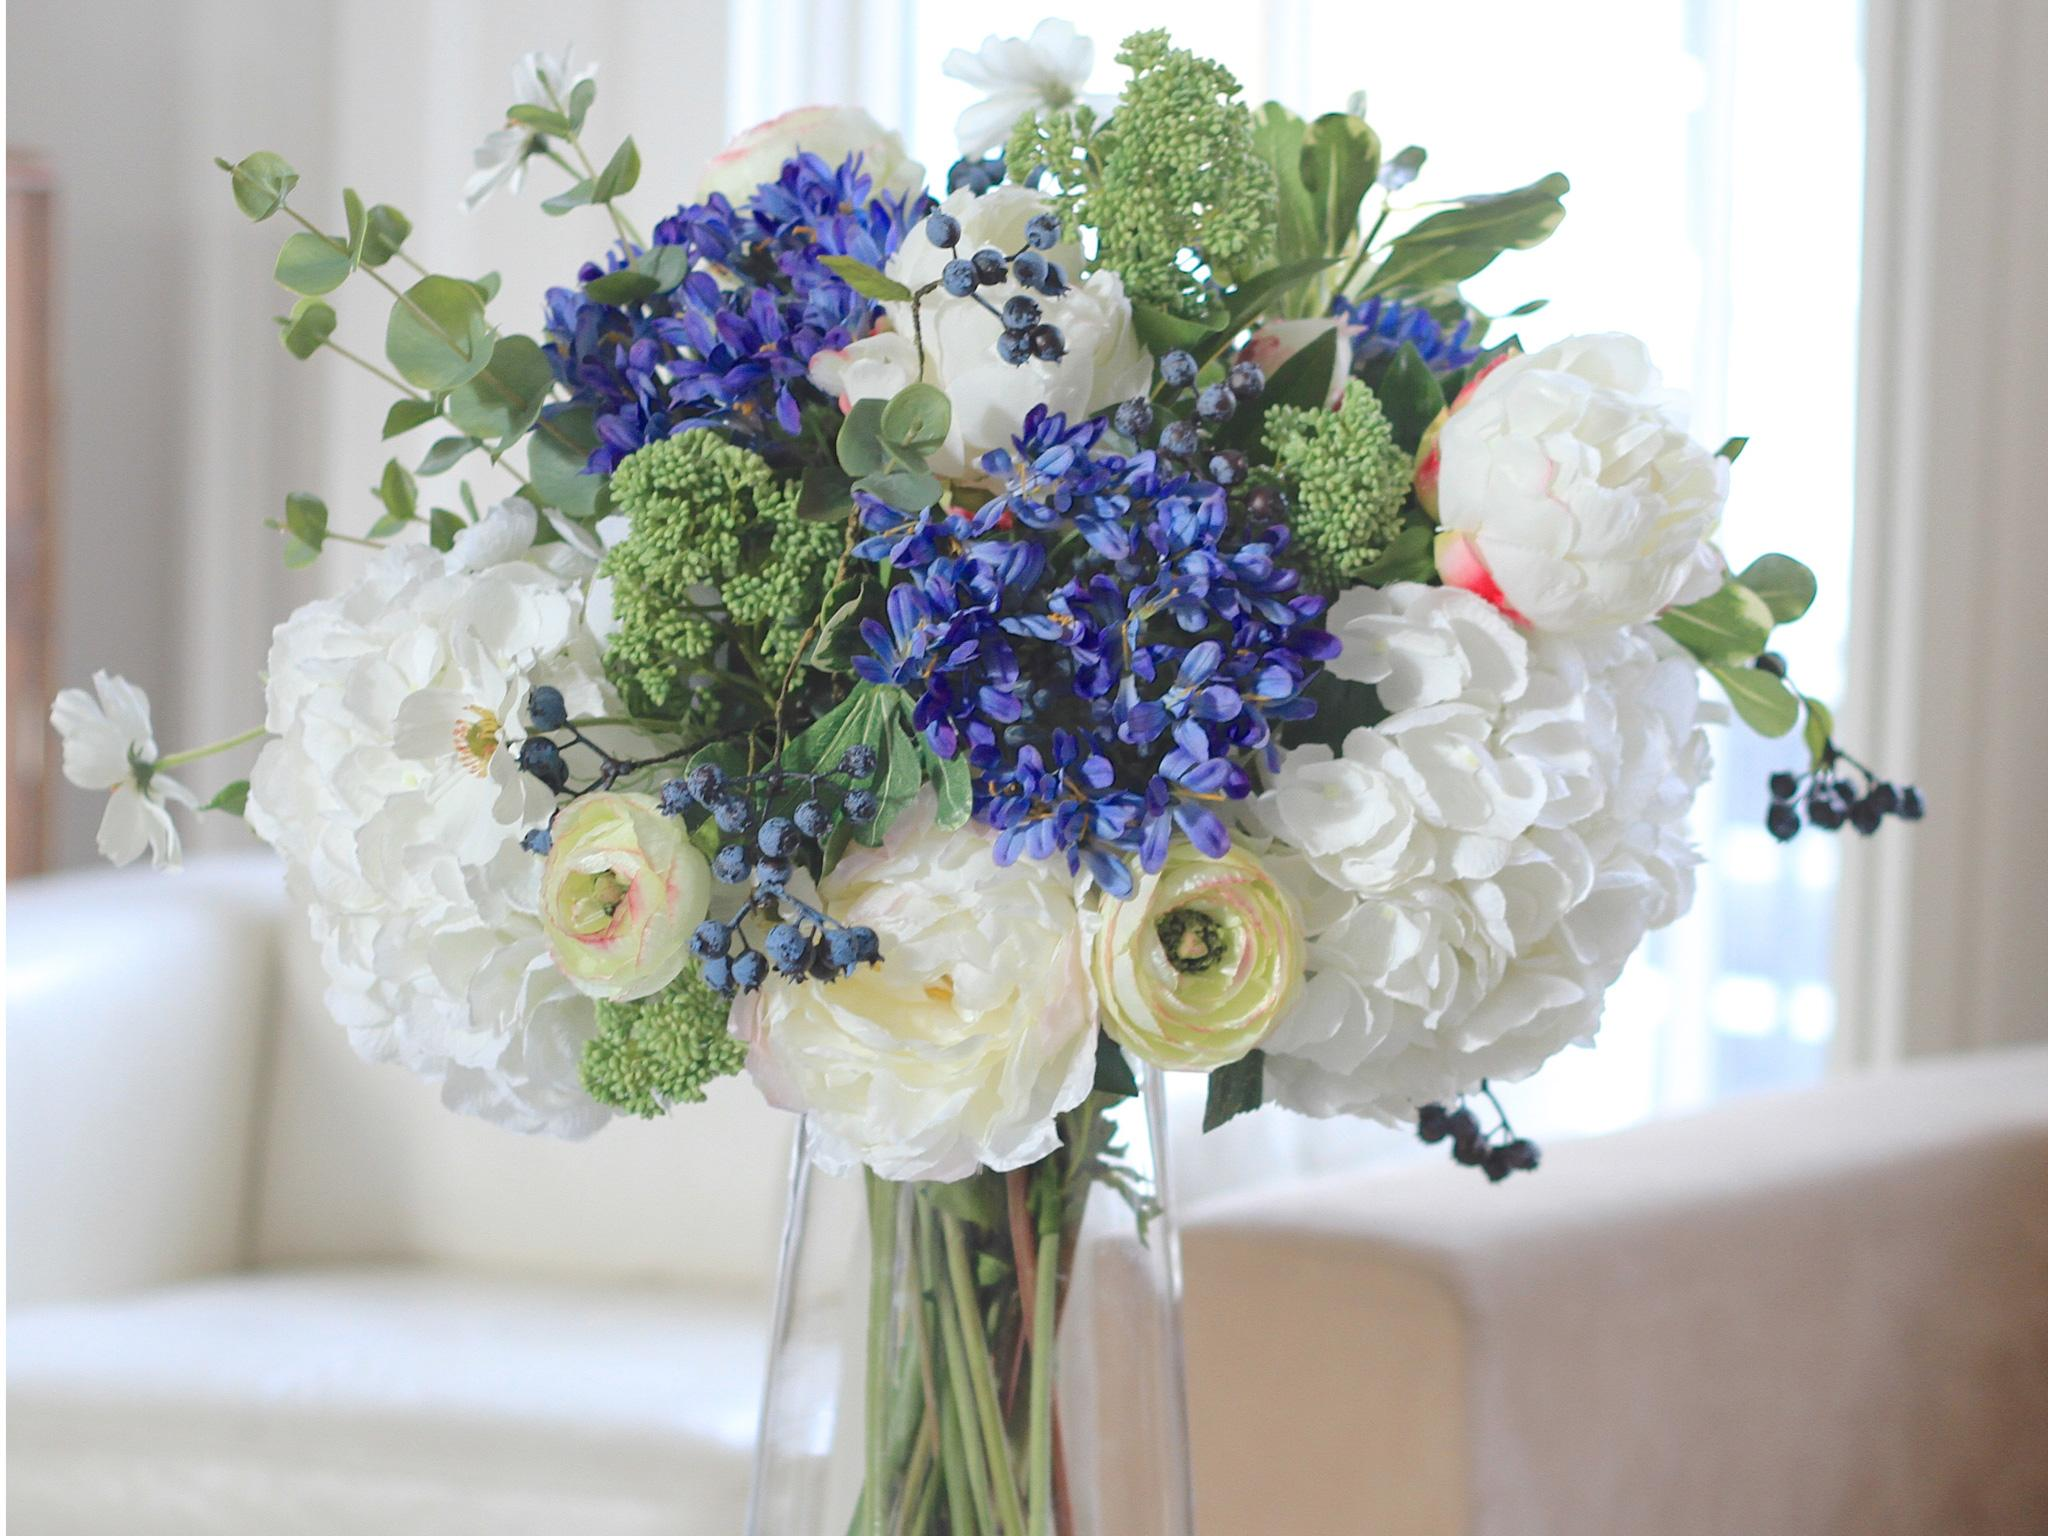 Hydrangeas Artificial With Vase – What Every Person Should Look Into